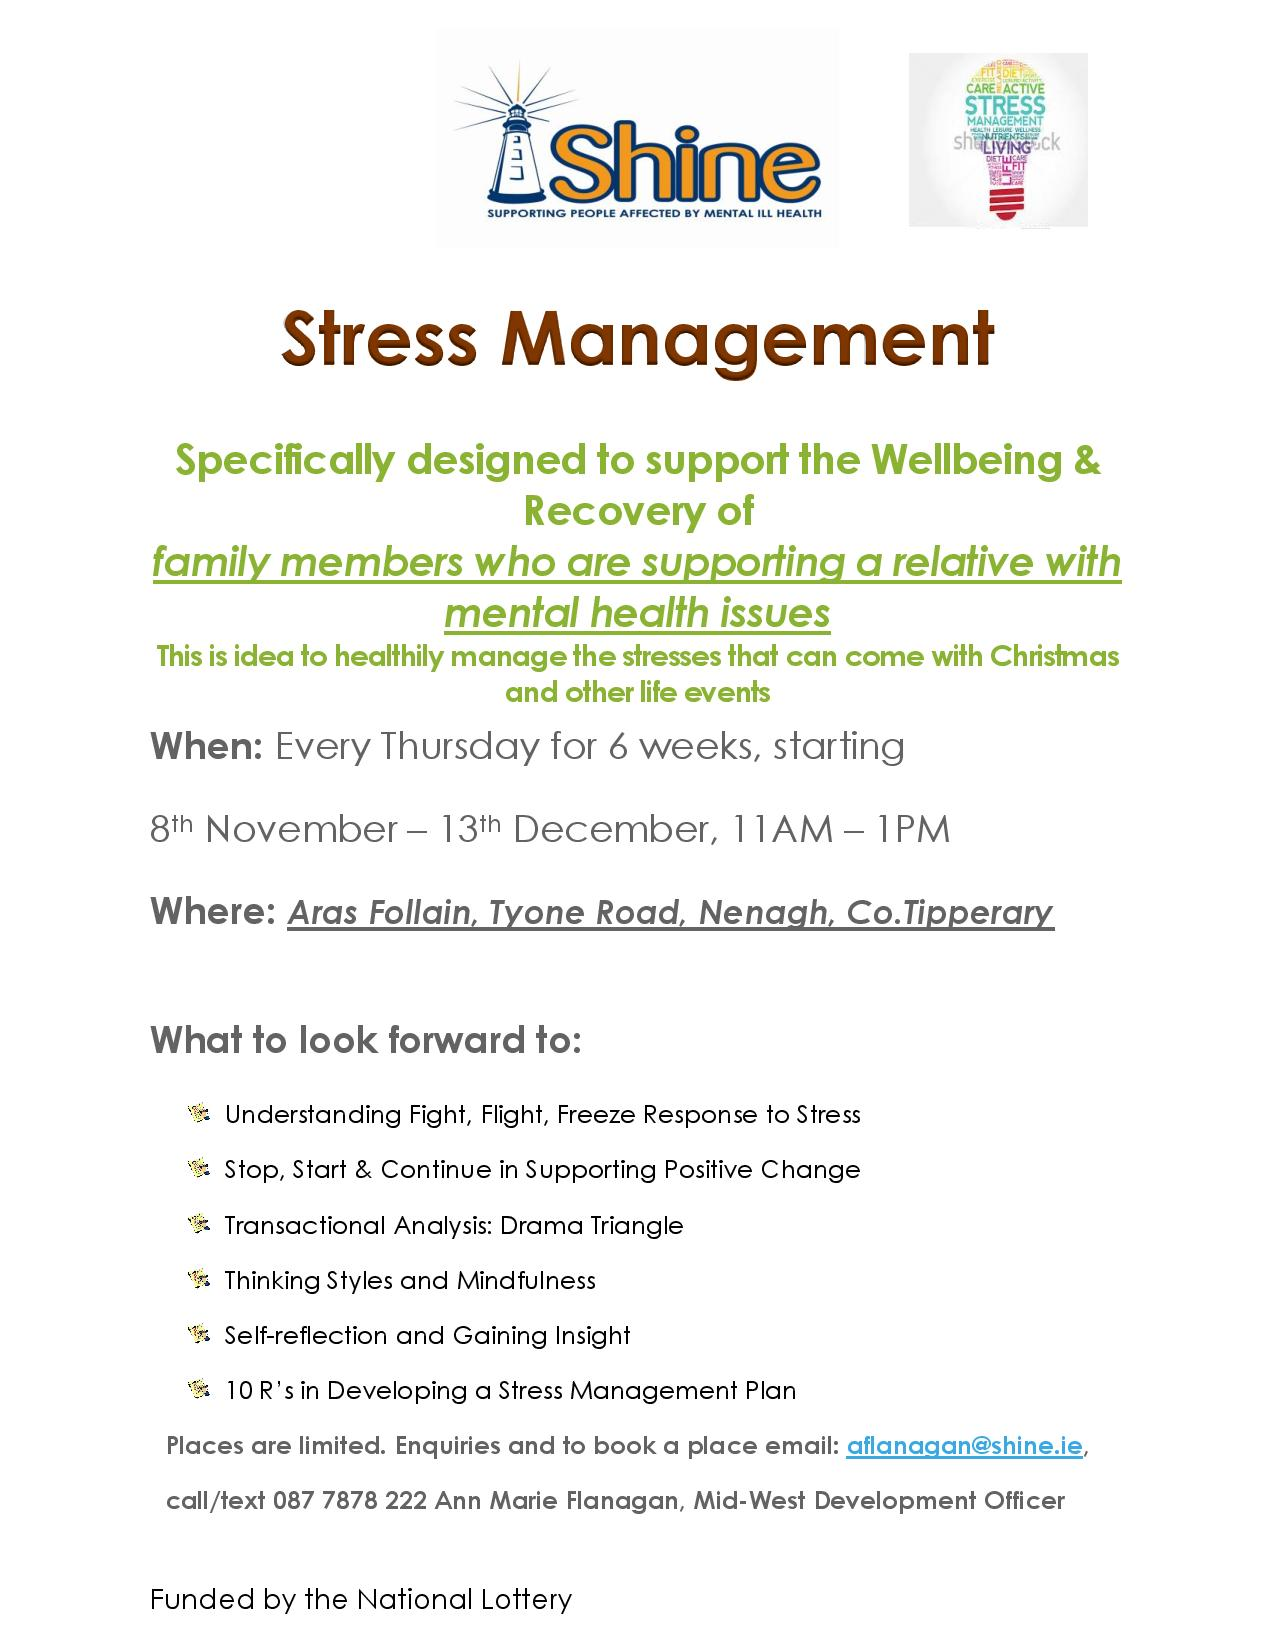 Stress Management Course in Nenagh, Co  Tipperary - Shine